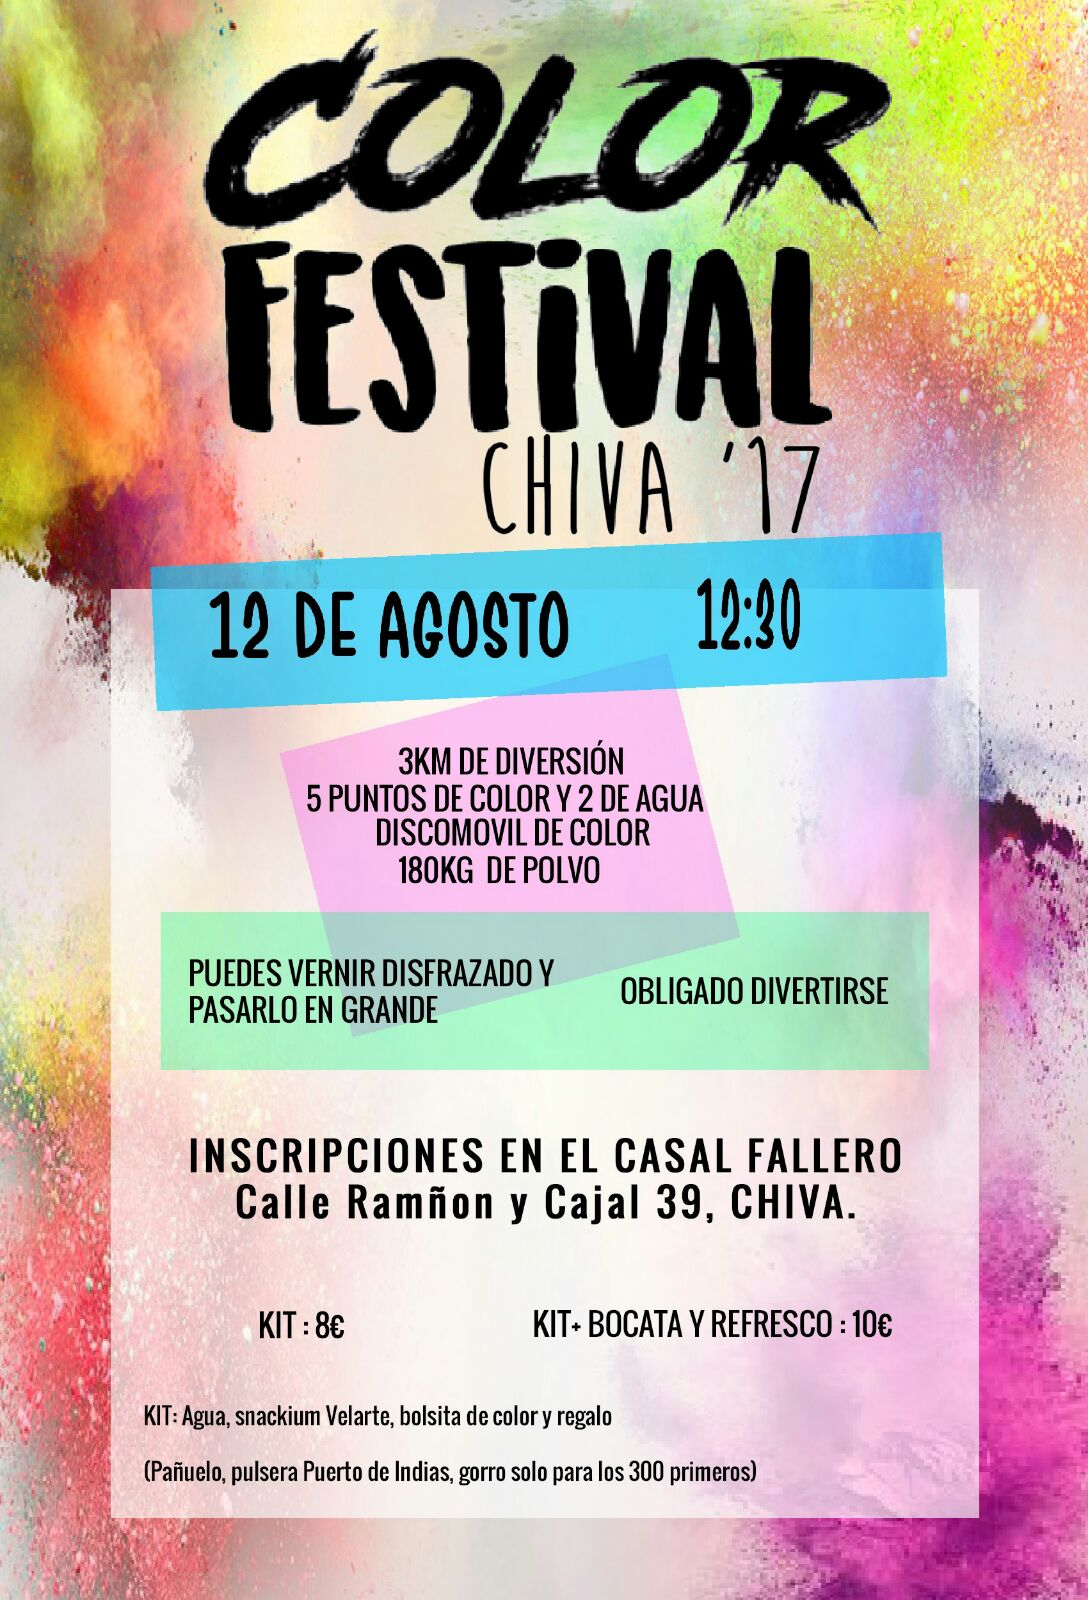 Color Festival Chiva '17.